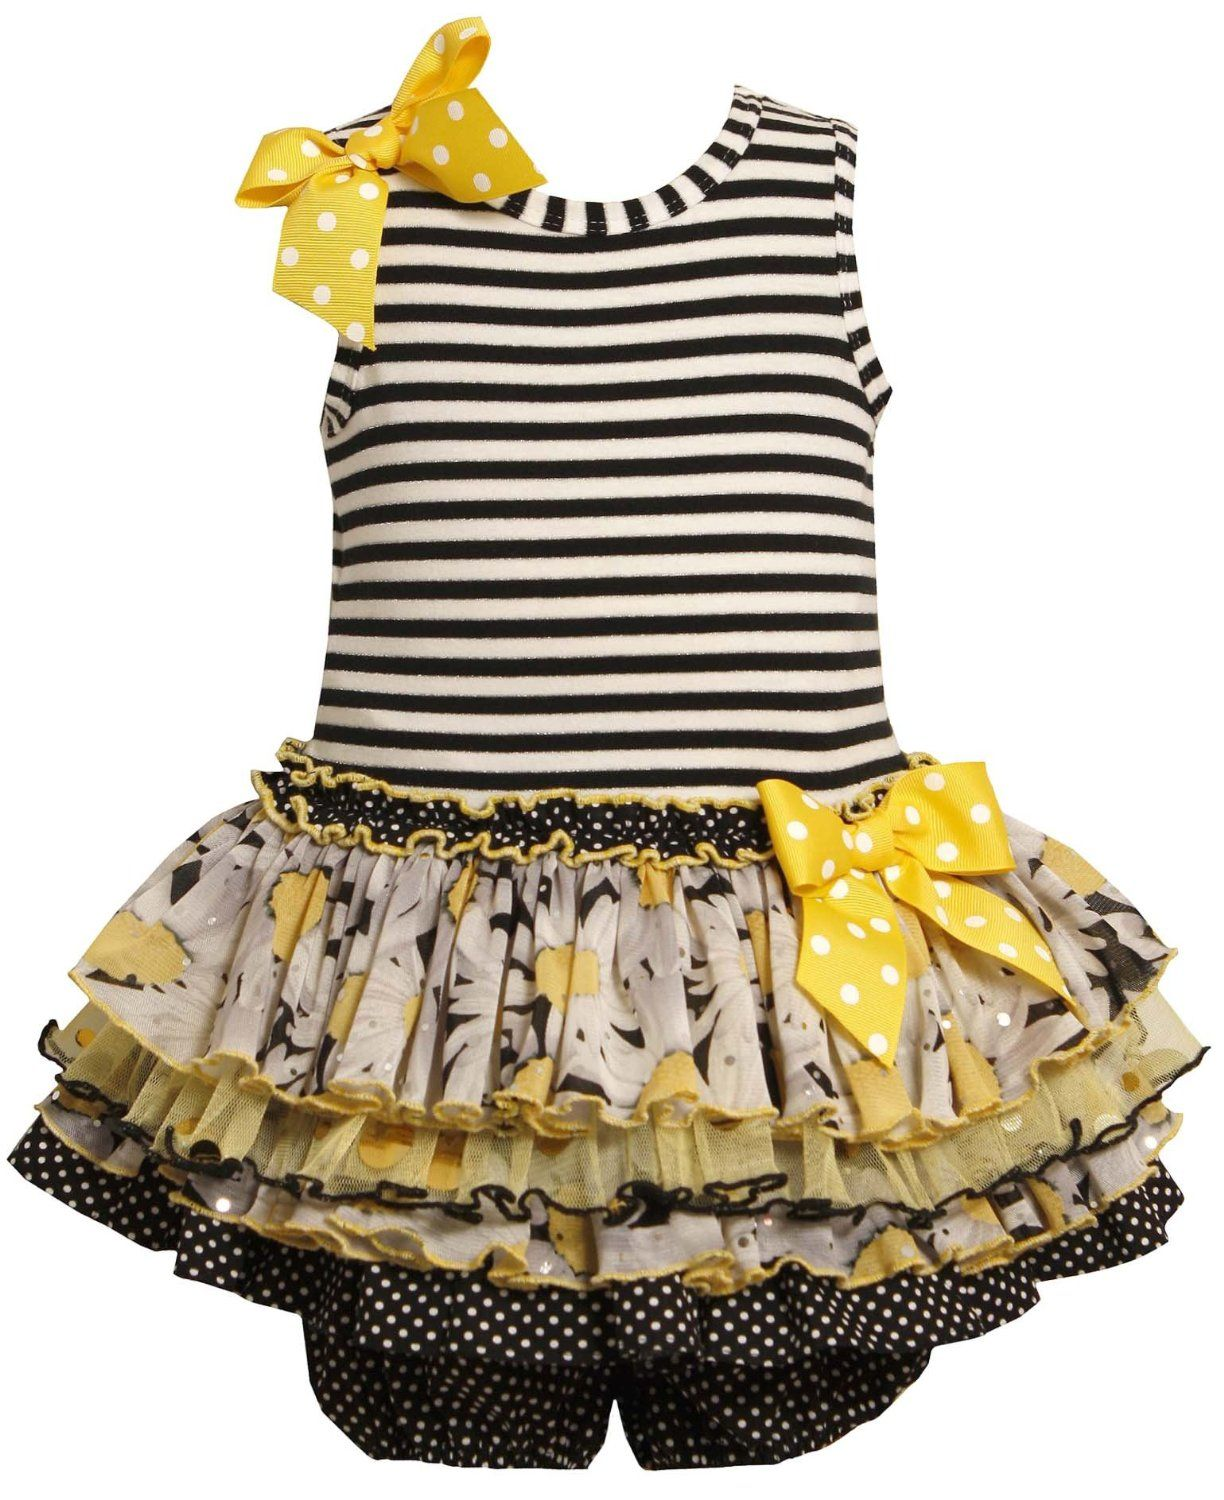 3f585cfddb80 Bonnie Jean Baby-Infant 12M-24M 2-Piece Striped Knit to Multi Tiered ...